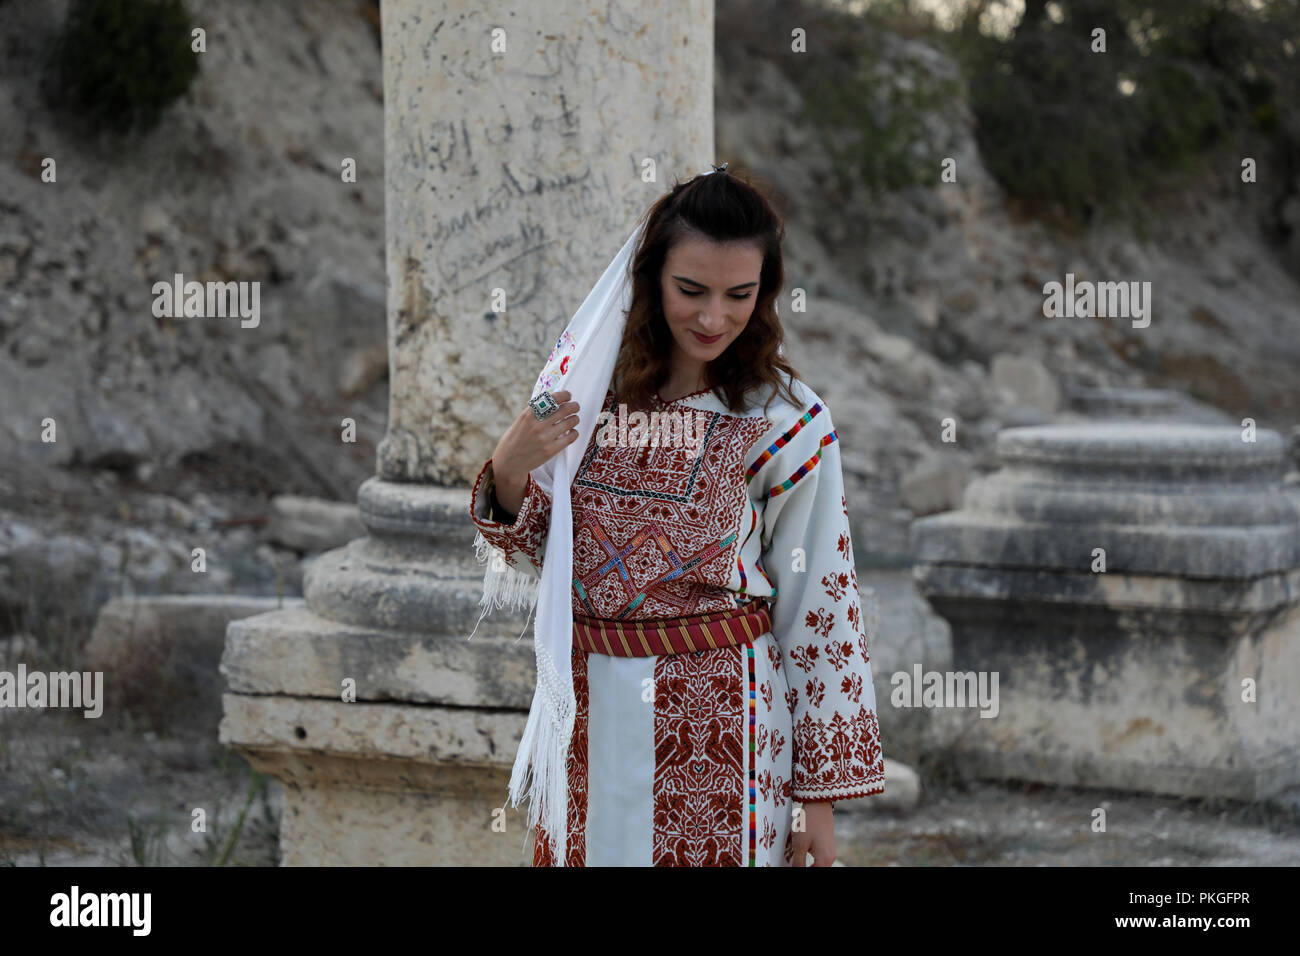 September 12, 2018 - Palestinians celebrate the ninth Sebastia festival of tourism and folklore reviving their history and heritage in the West Bank village of Sebastia, in the northwest of Nablus. Above the built up area of the Sebastia village on the eastern slope of the hill is the Sebastia archaeological site comprising remains from six successive cultures including Canaanite, Israelite, Assyrians, Chaldeans, Hellenistic, Herodian, Roman, Byzantine, Crusaders, and Ottoman history. In addition to its historical and archaeological importance Sebastia is also home to ancient olive groves ( - Stock Image